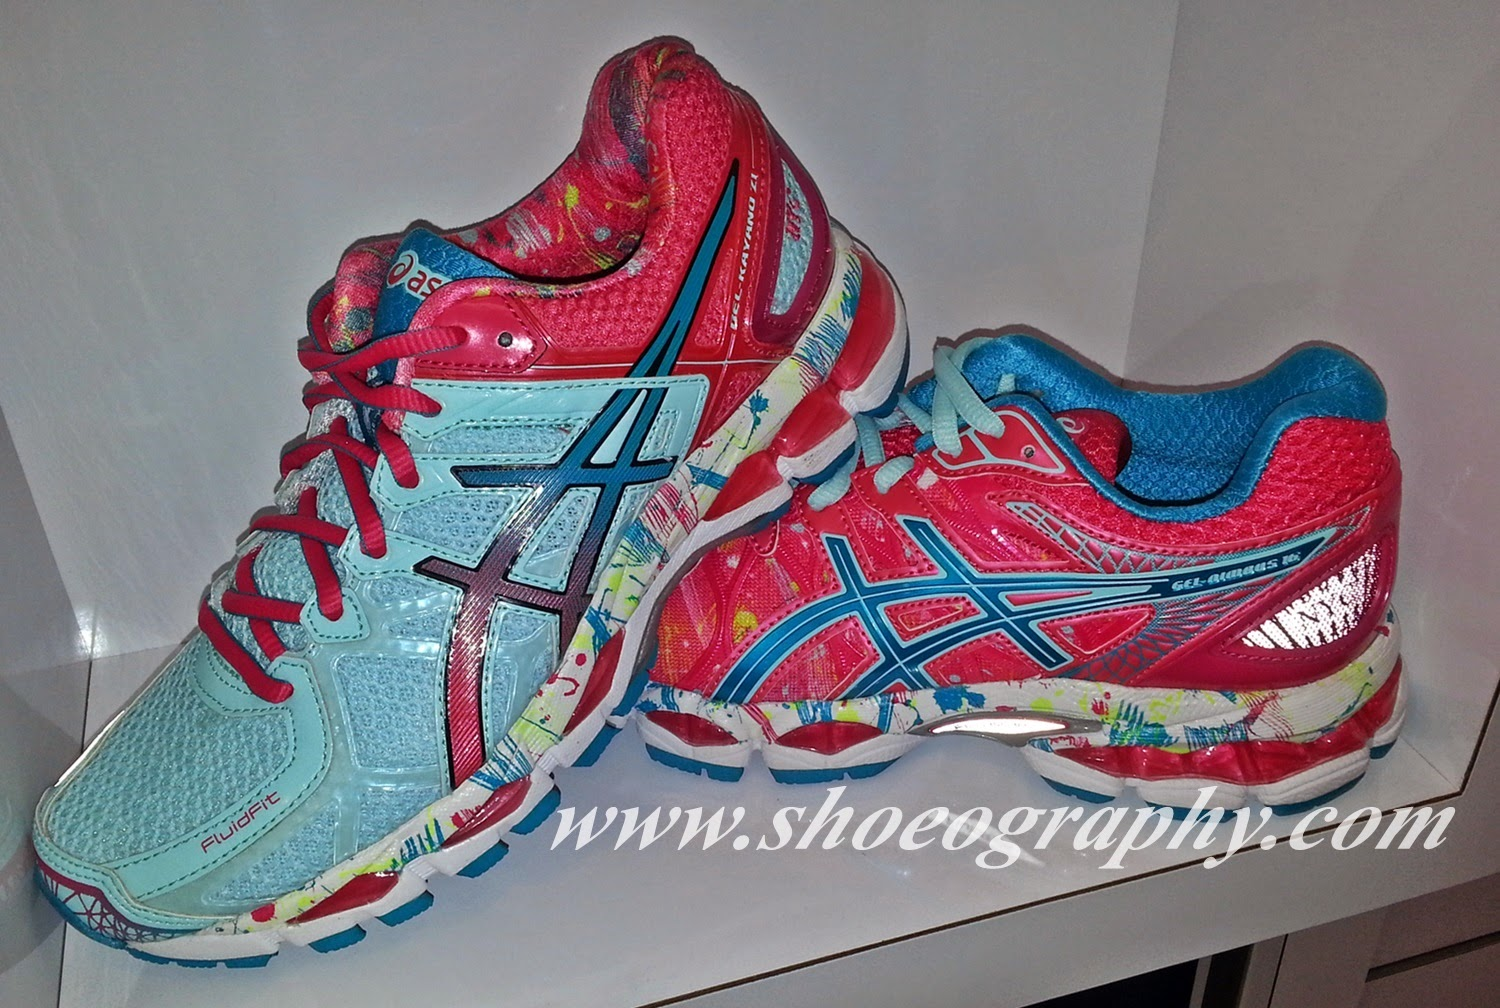 shoe of the day asics gel kayano 21 nyc gel nimbus 16. Black Bedroom Furniture Sets. Home Design Ideas